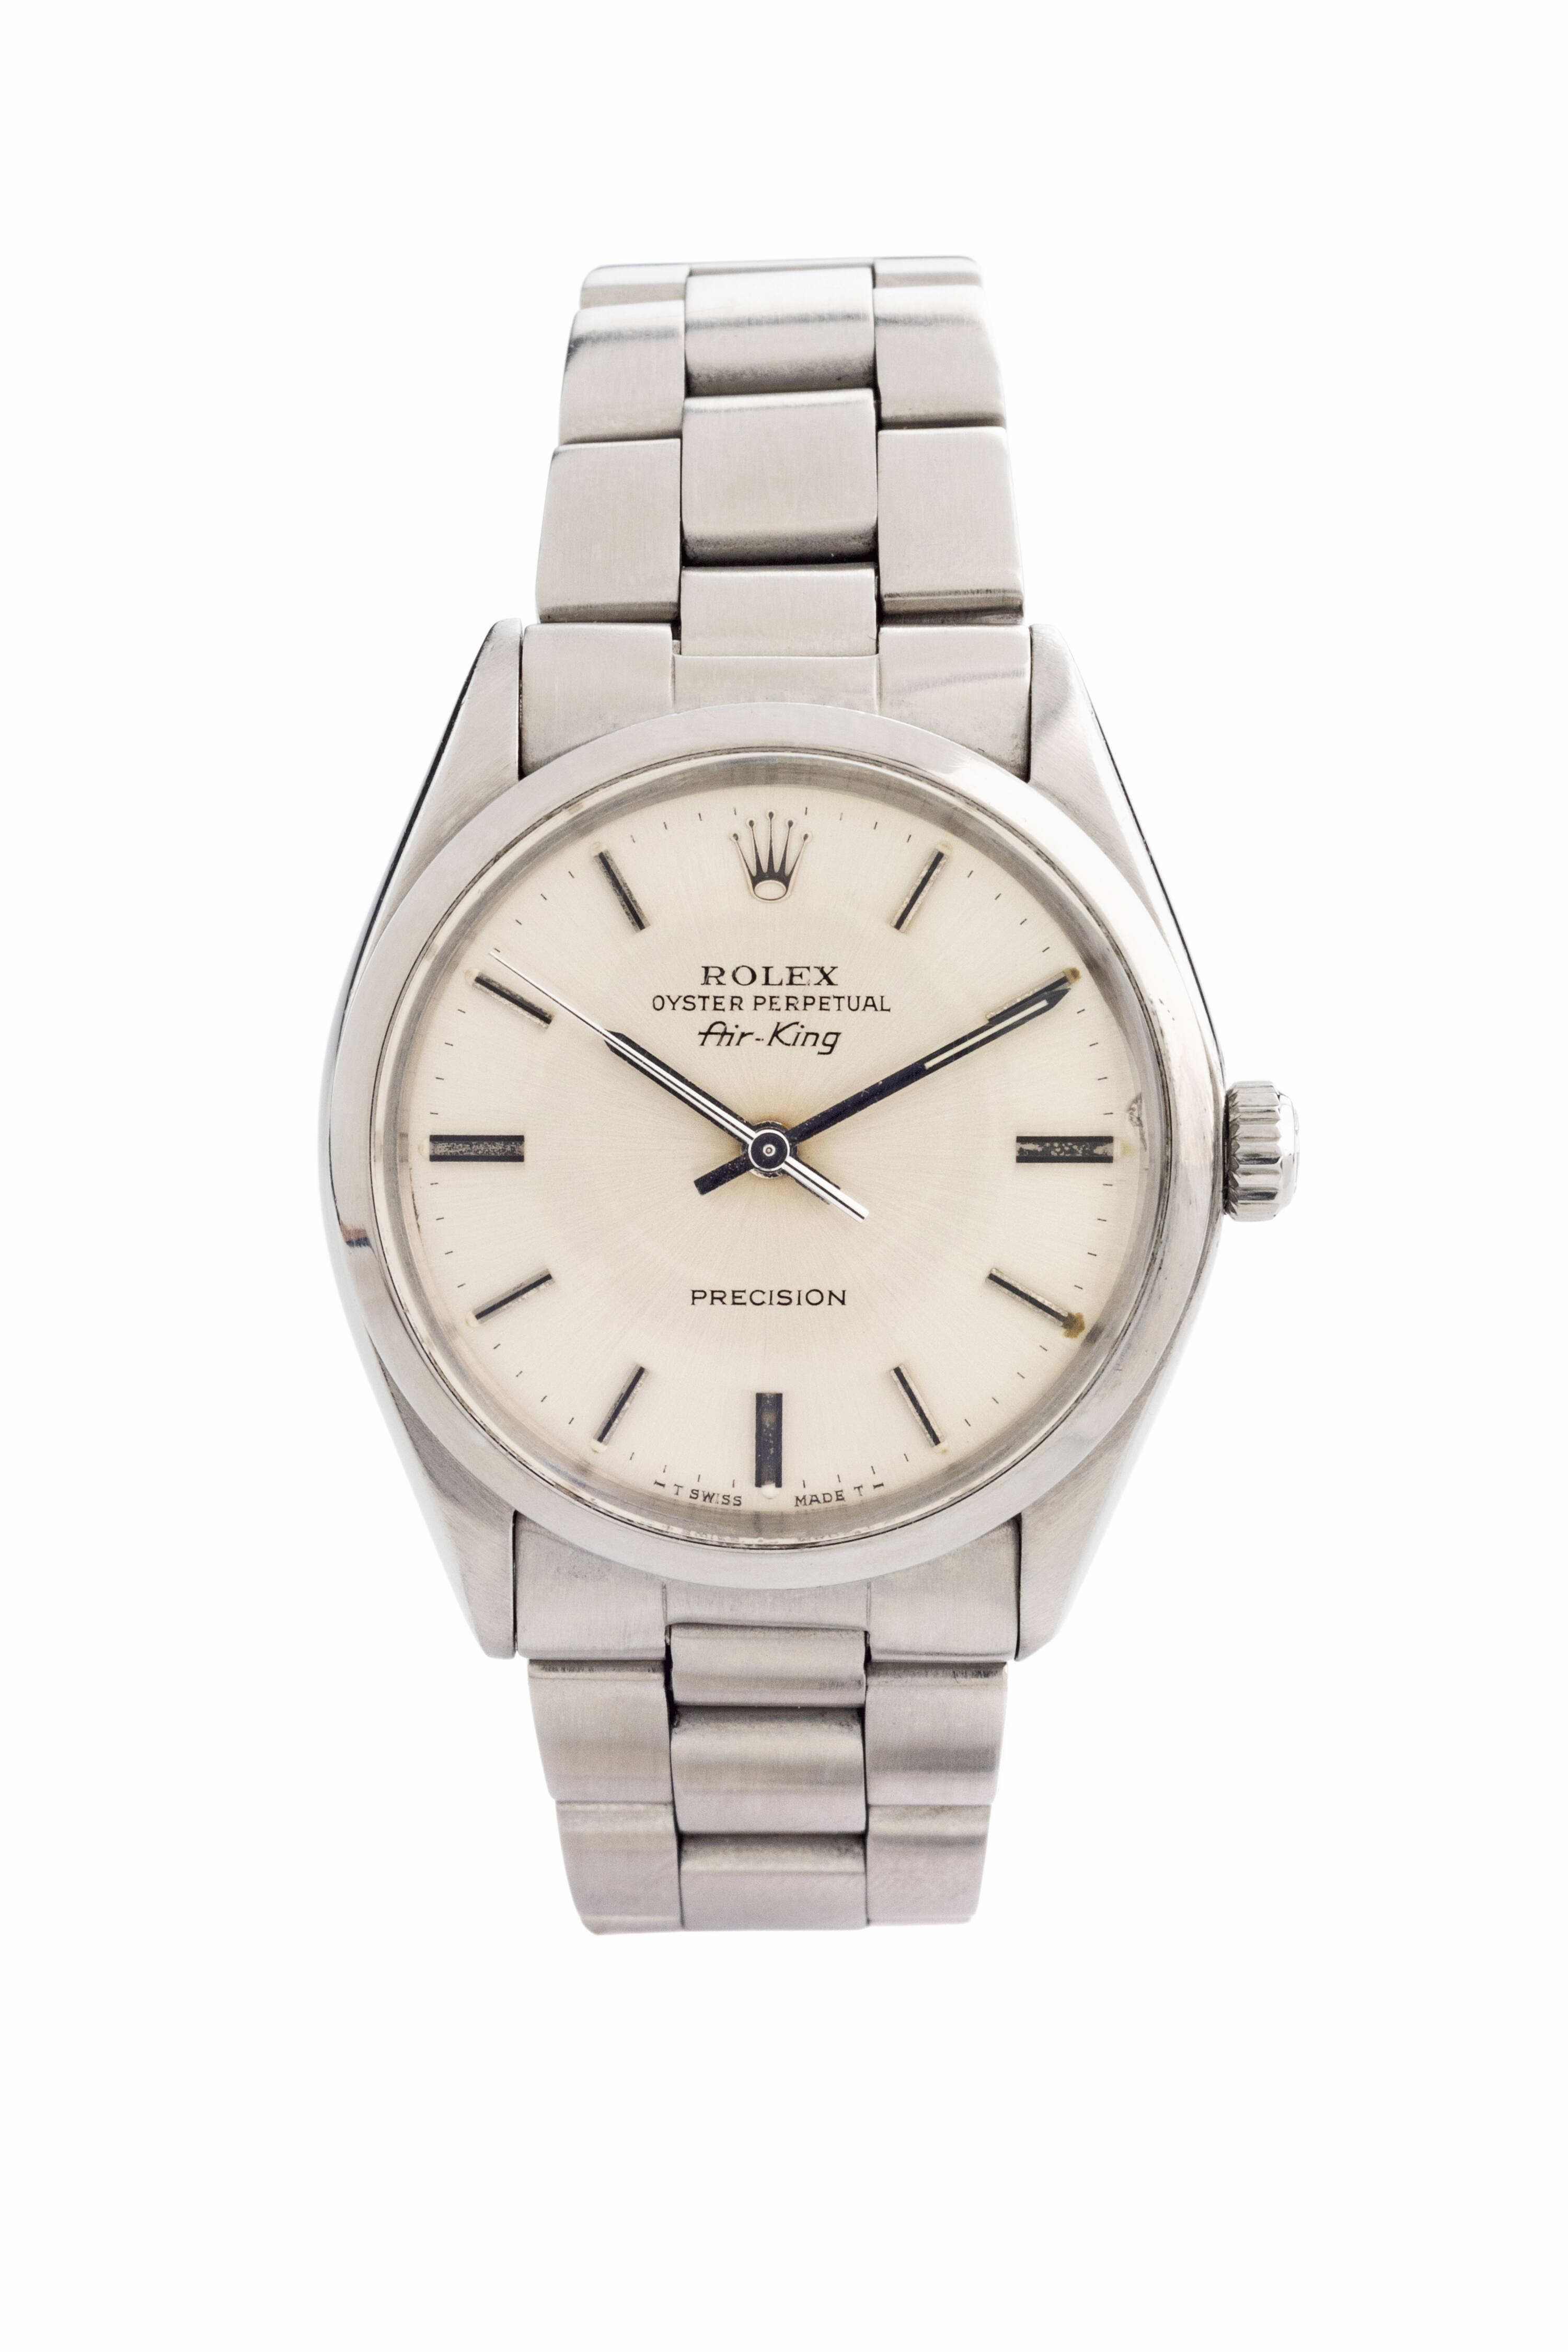 ROLEX - 'Oyster Perpetual Air-King', ref. 5005, anno 1977